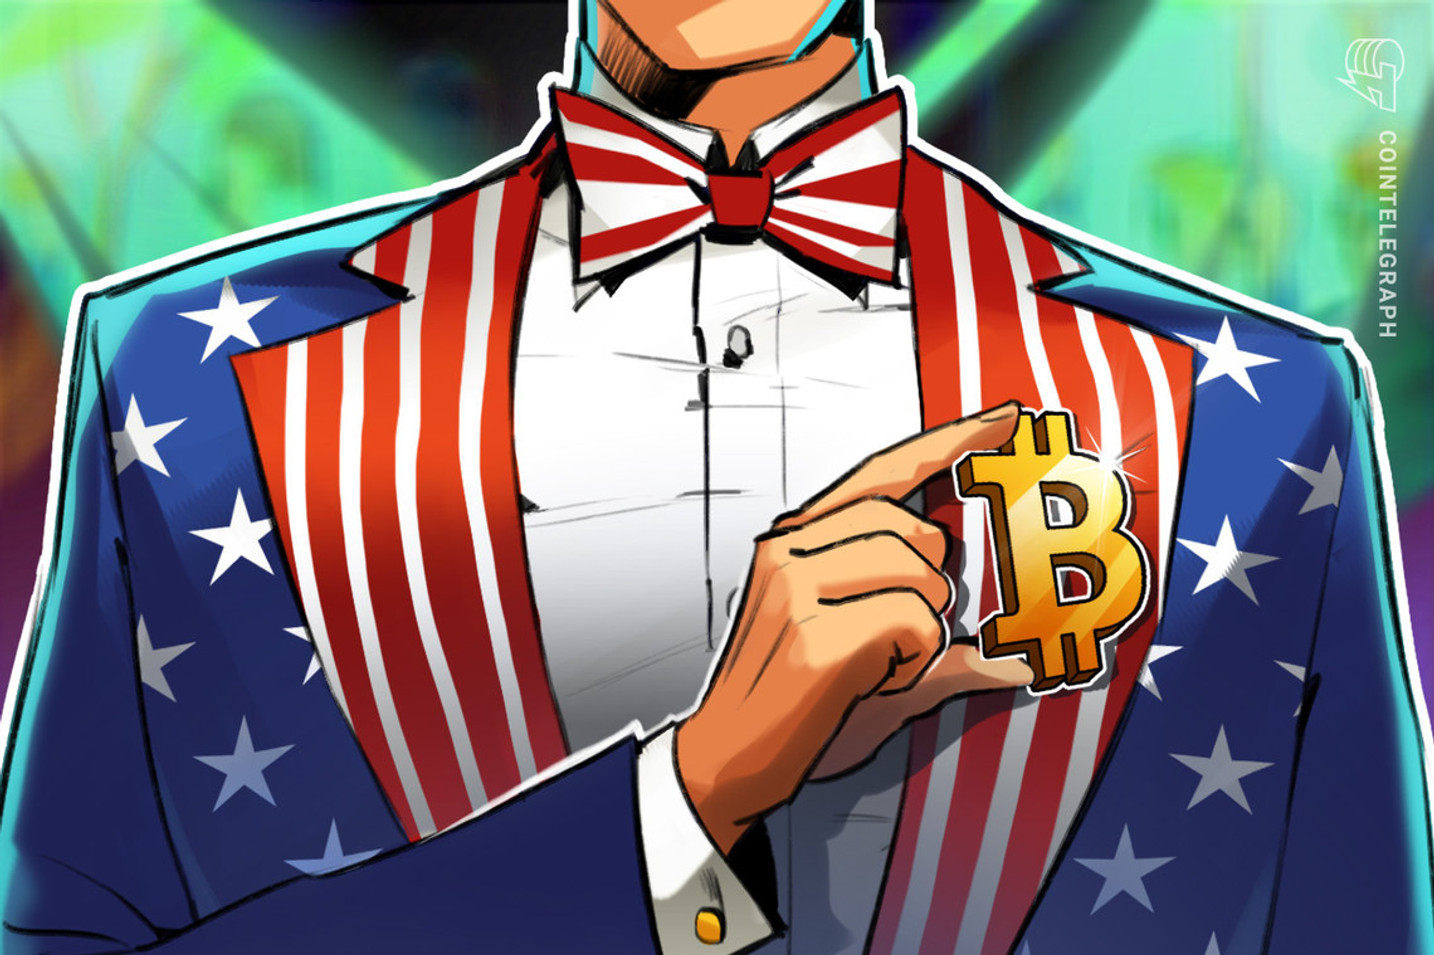 Governments are looking to buy Bitcoin, NYDIG CEO confirms